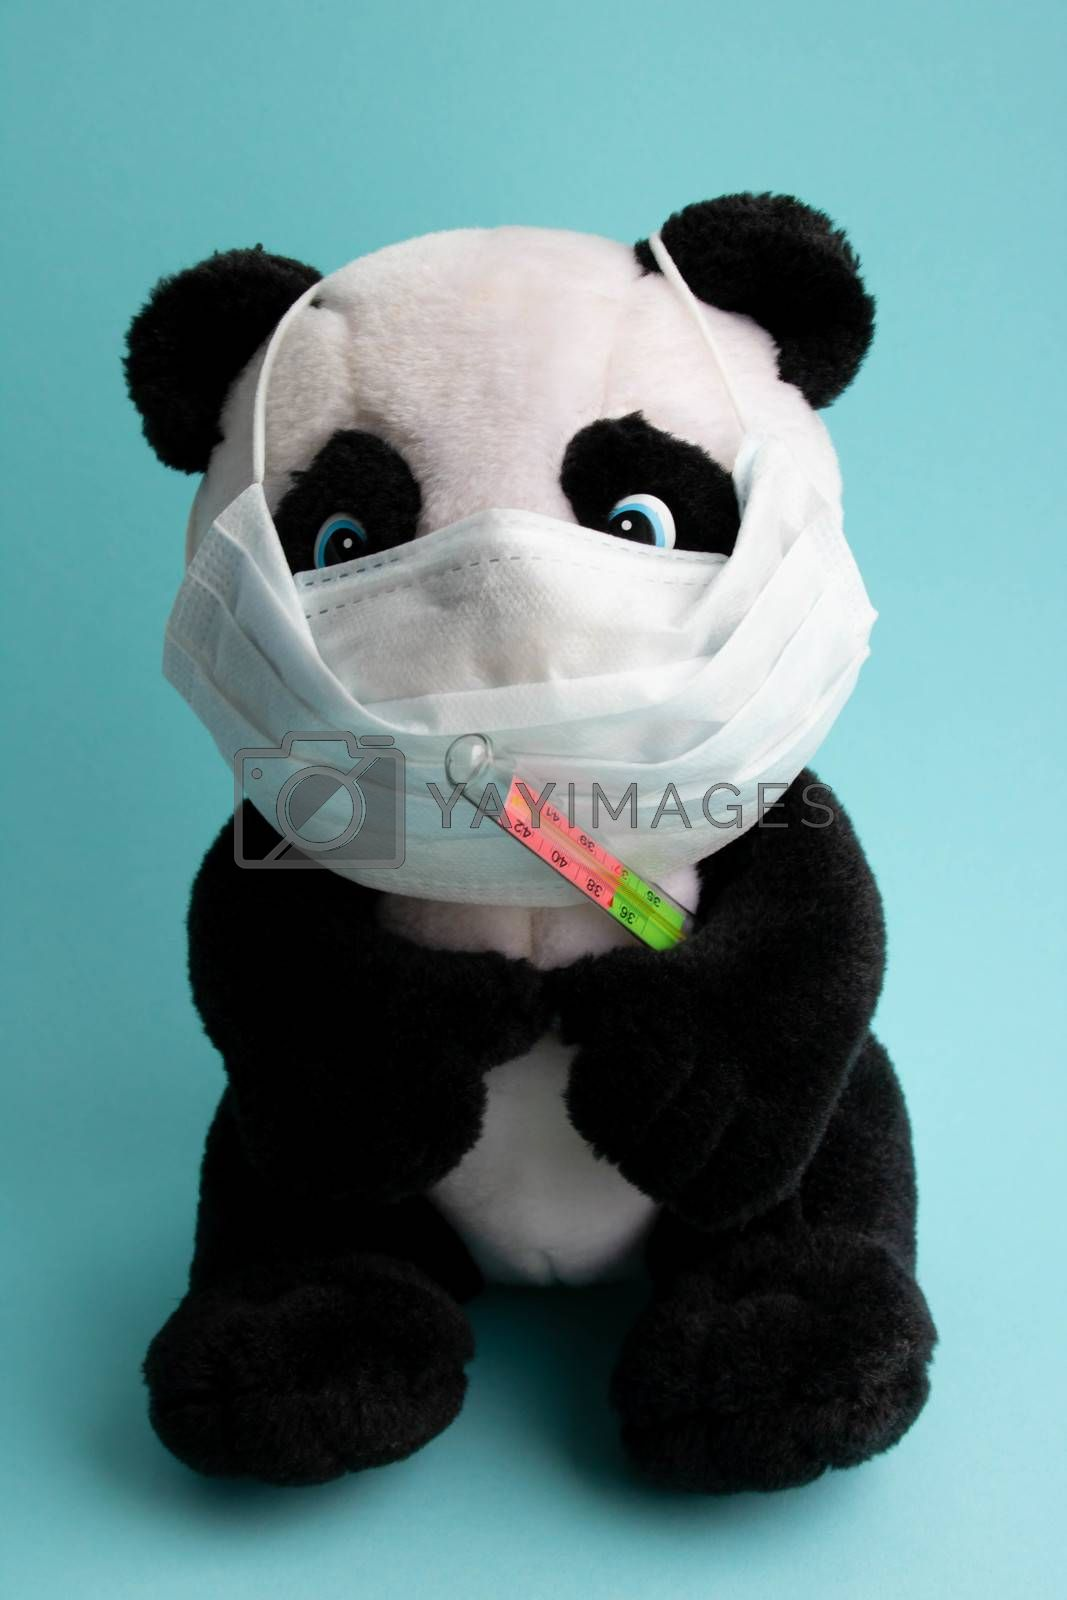 A toy panda in a medical mask with a thermometer sits on blue background. Coronavirus treatment concept.